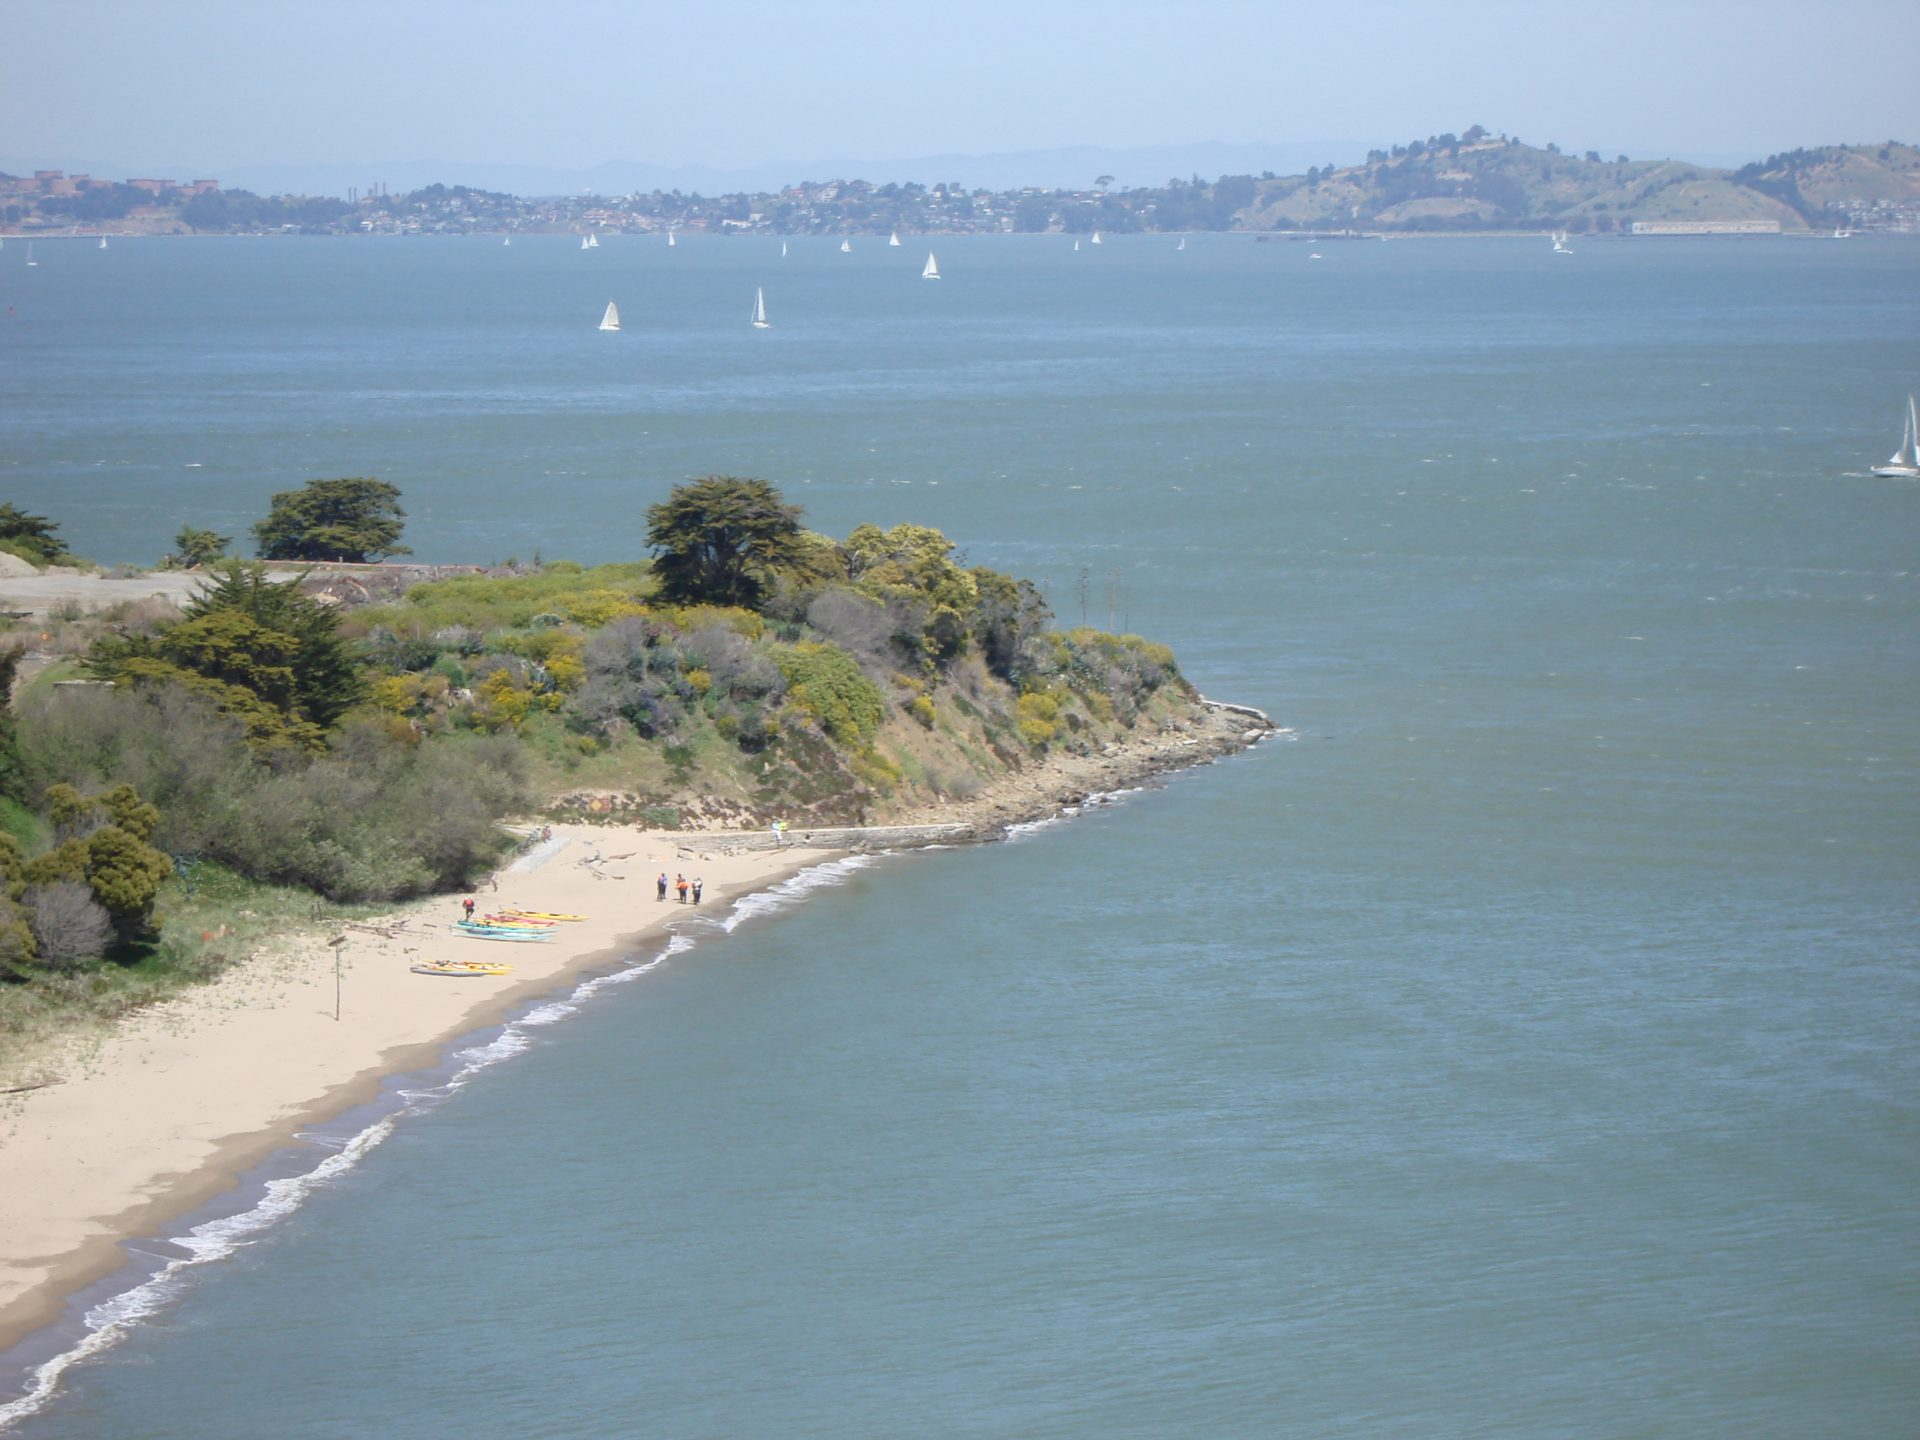 distant view down to beach with kayaks, wooded point, bay beyond